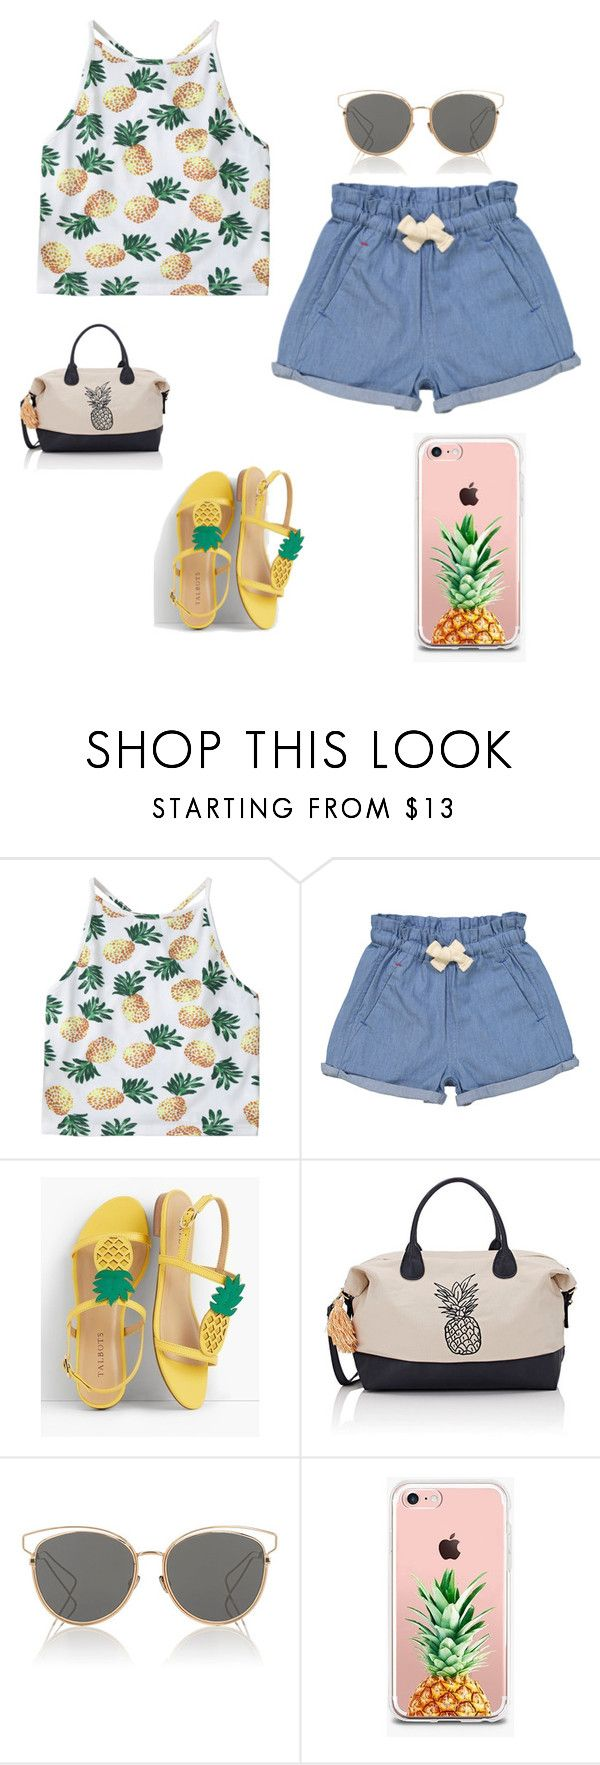 """Pineapple"" by daniuskaloreto on Polyvore featuring moda, Tootsa MacGinty, Talbots, Deux Lux, Christian Dior y The Casery"